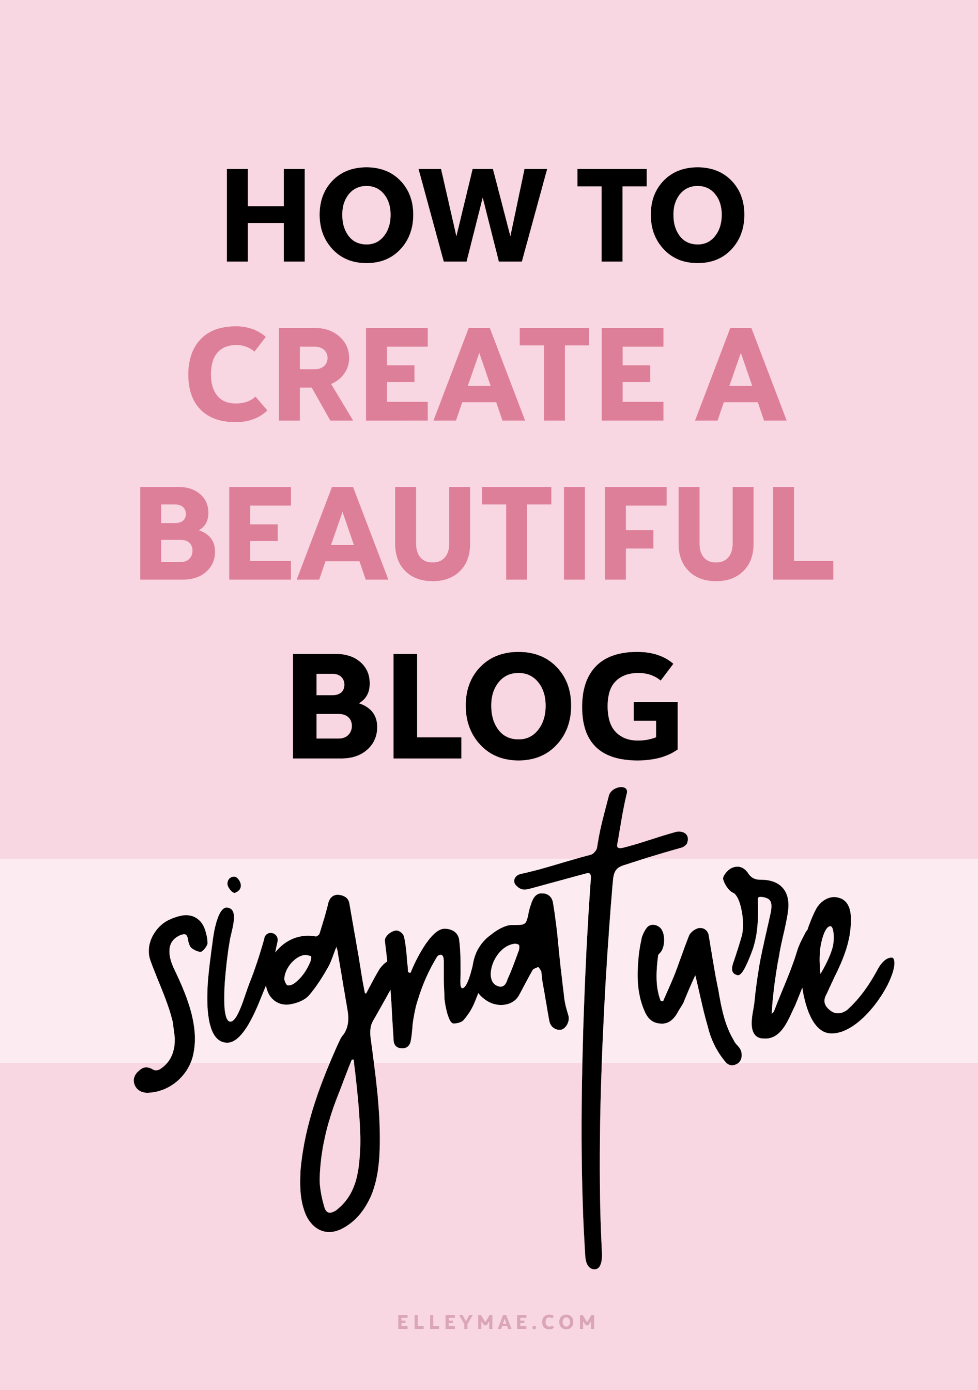 How To Create & Add A Blog Signature To Your Posts | Adding a blog signature to your posts has never been easier. Create a stunning website & build brand consistency by adding a blog signature to the end of each blog post before you hit publish. Download WordPress plugins or manually add them yourself - the choice is yours | Learn more at ElleyMae.com